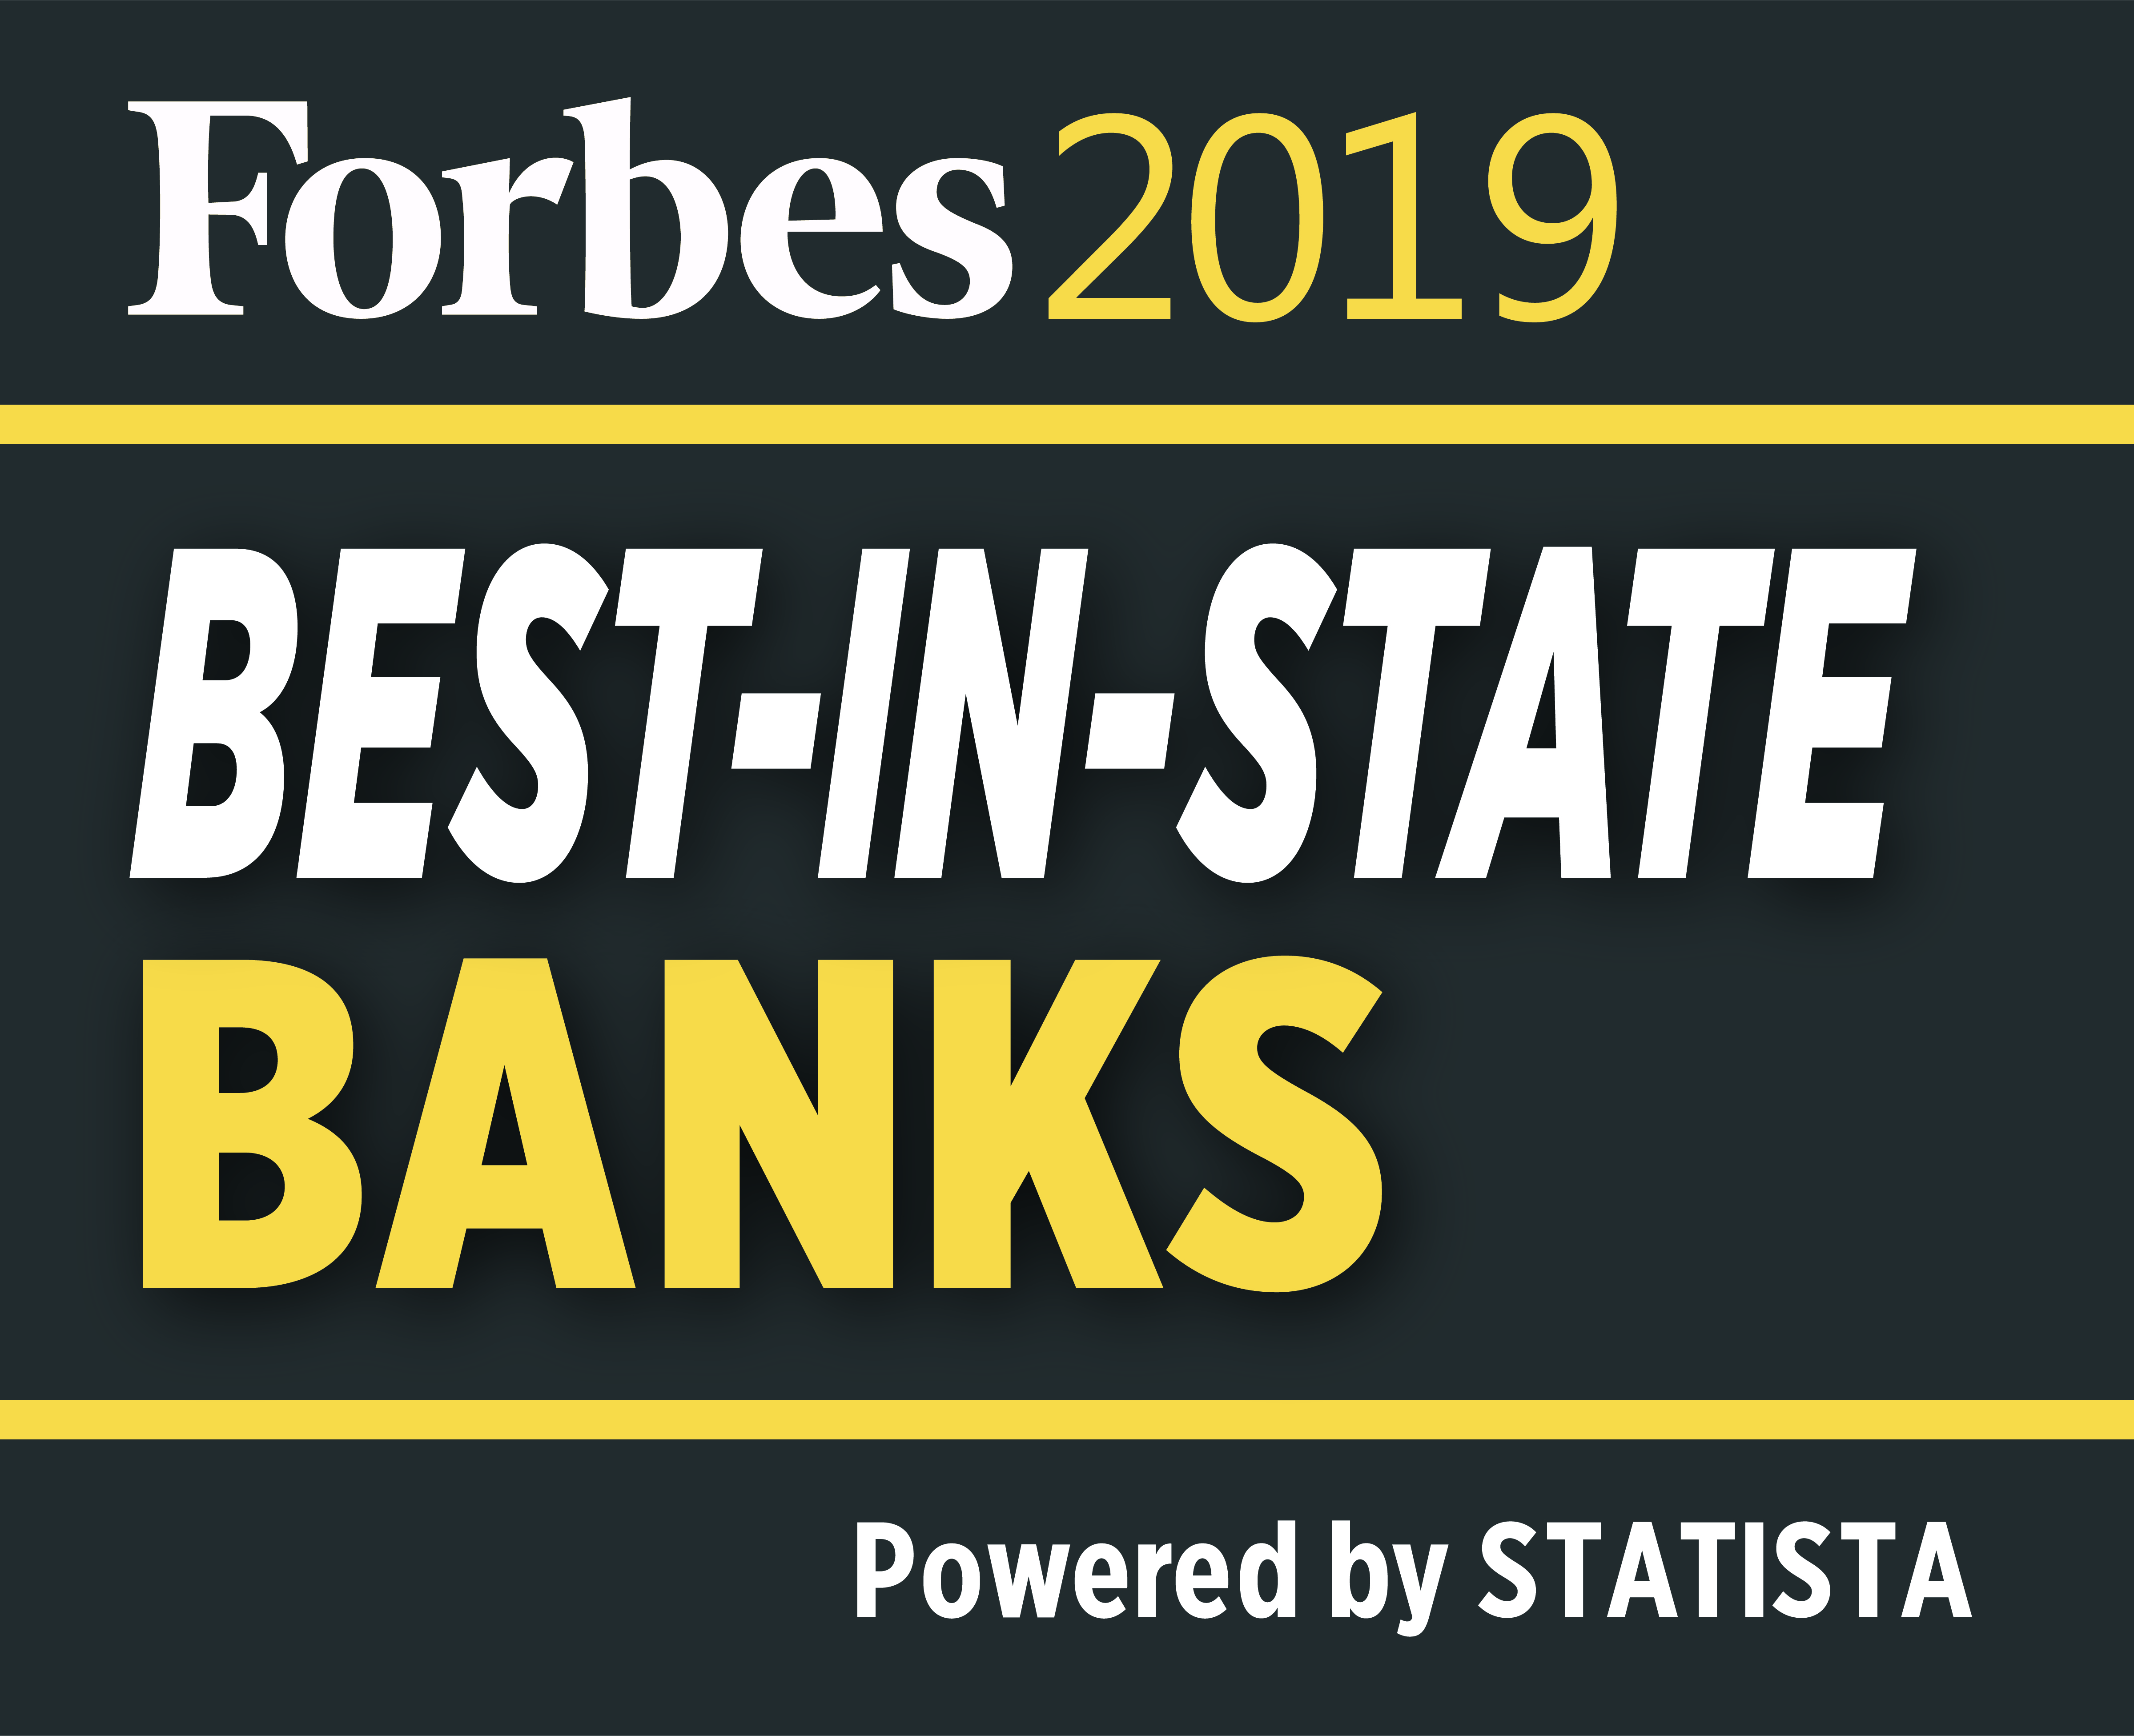 Forbes_BISBCU2019_Siegel_Banks_basic